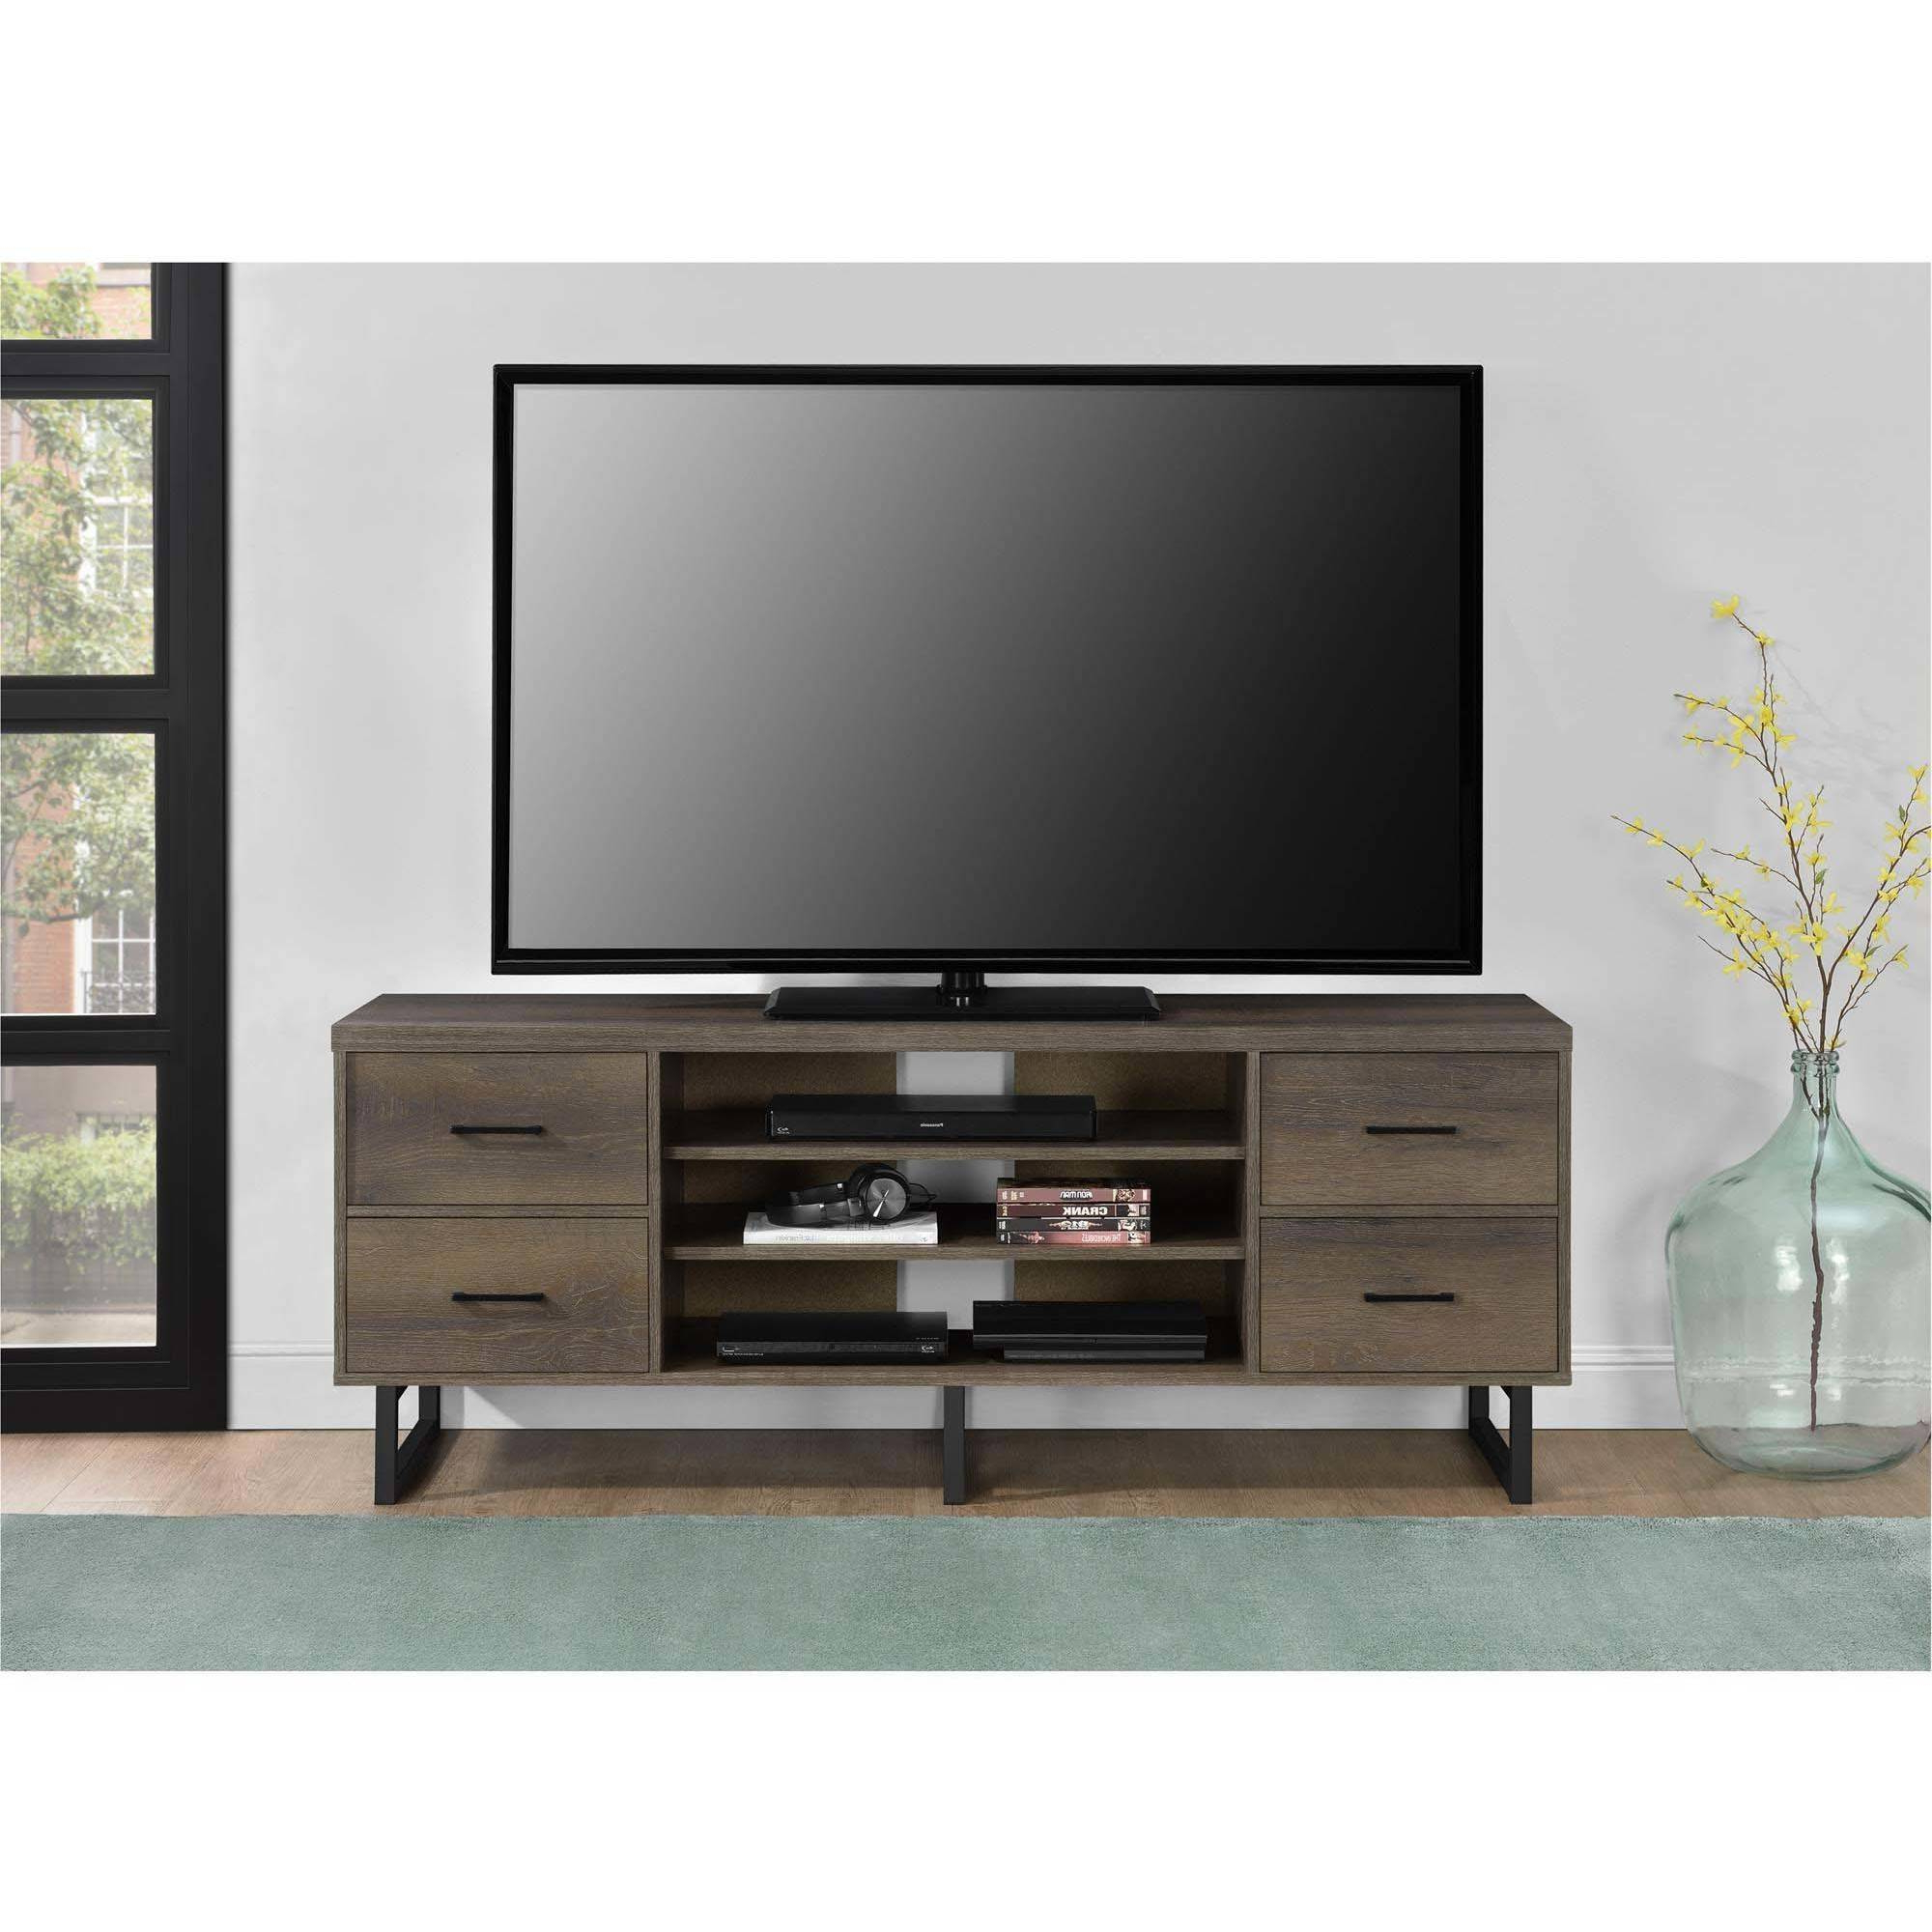 """Well Liked Adayah Tv Stands For Tvs Up To 60"""" For Ameriwood Home Candon Tv Stand With Bins For Tvs Up To  (View 23 of 25)"""